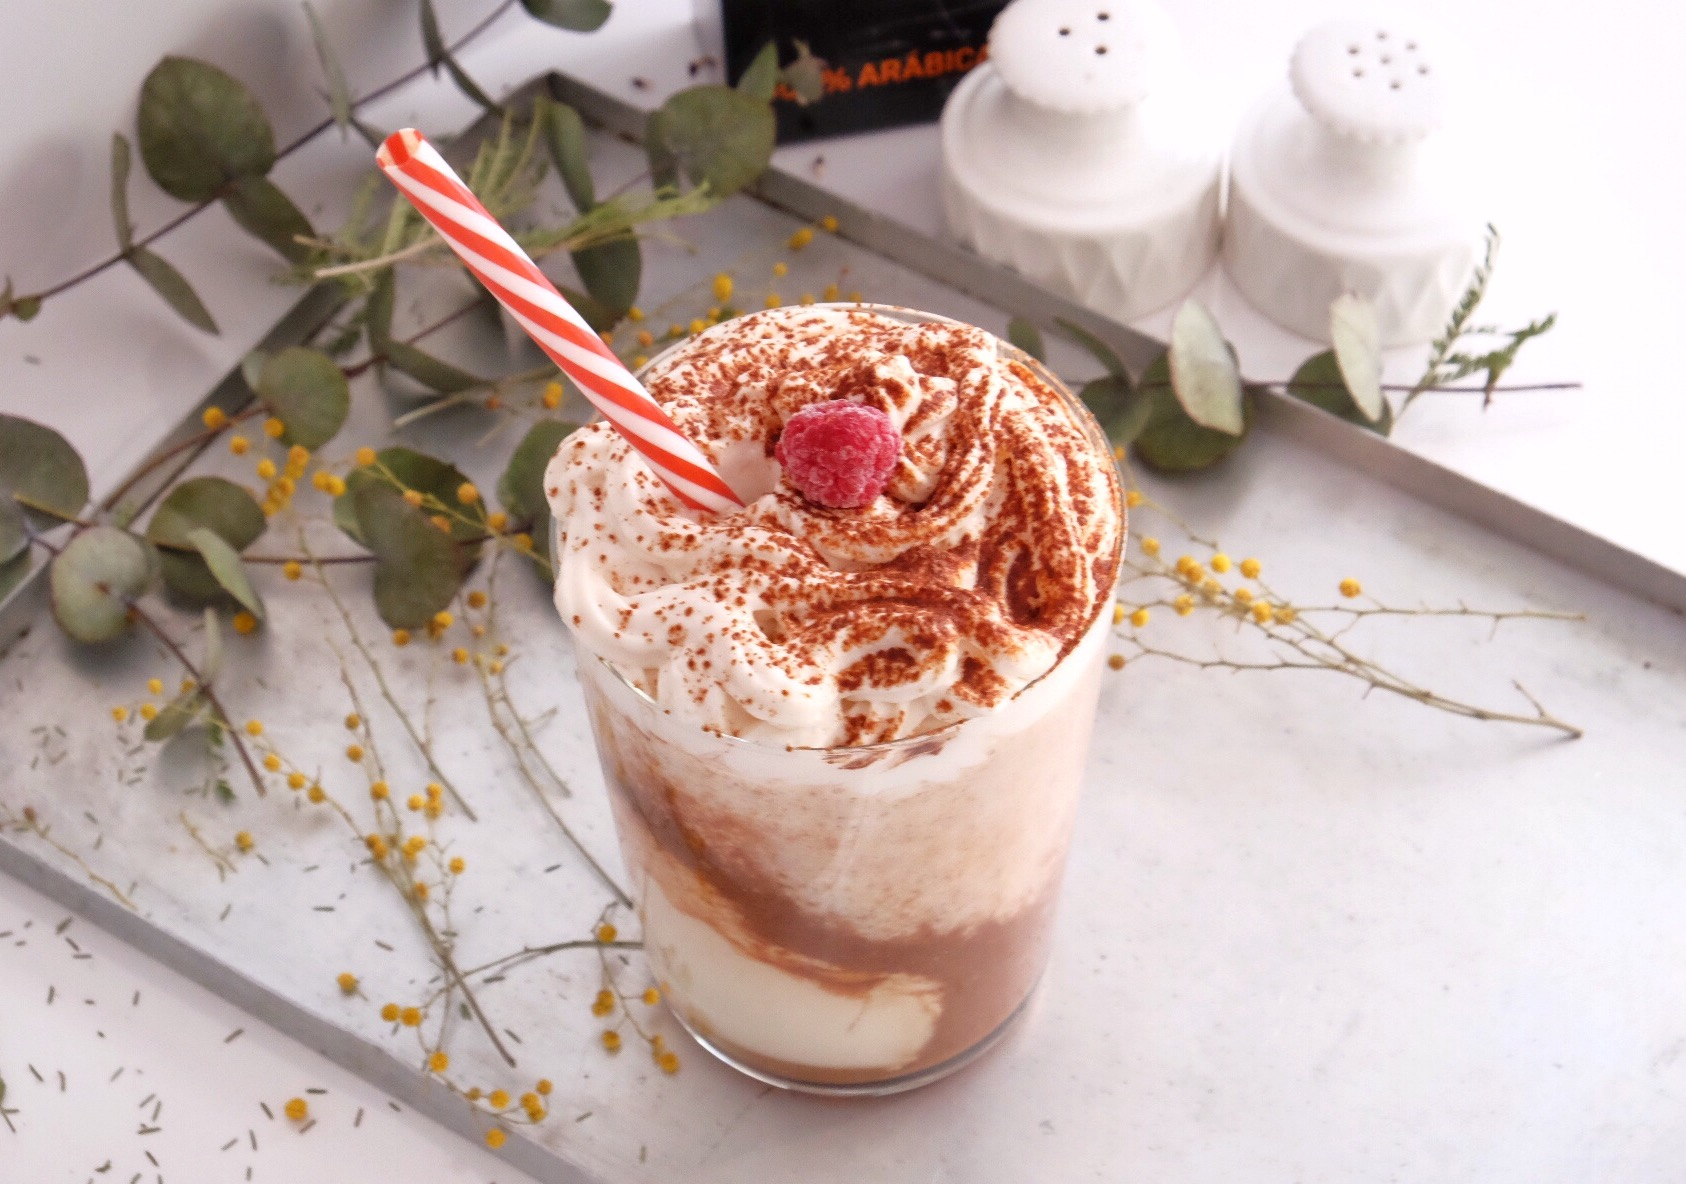 Delicious tiramisu smoothie